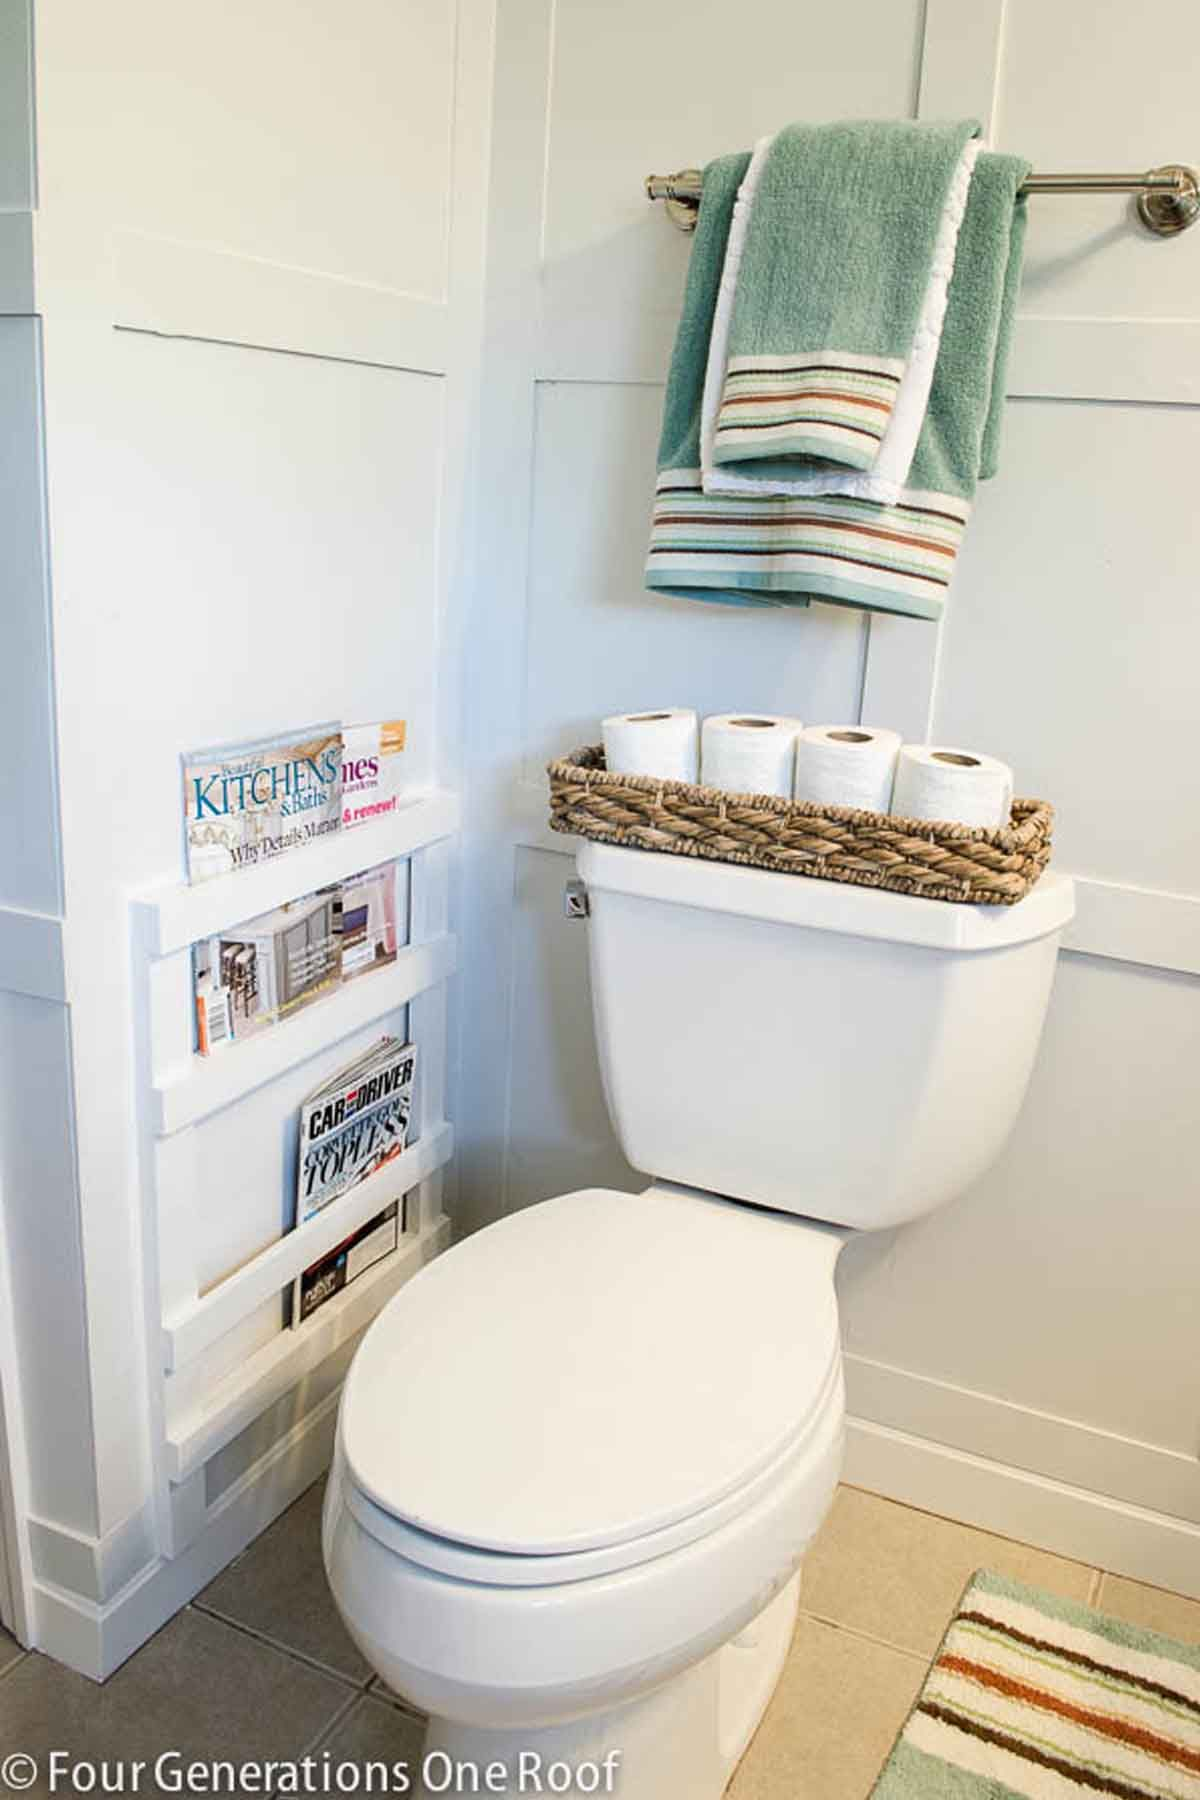 20 Bathroom Organization Ideas To Make Mornings Less Hectic